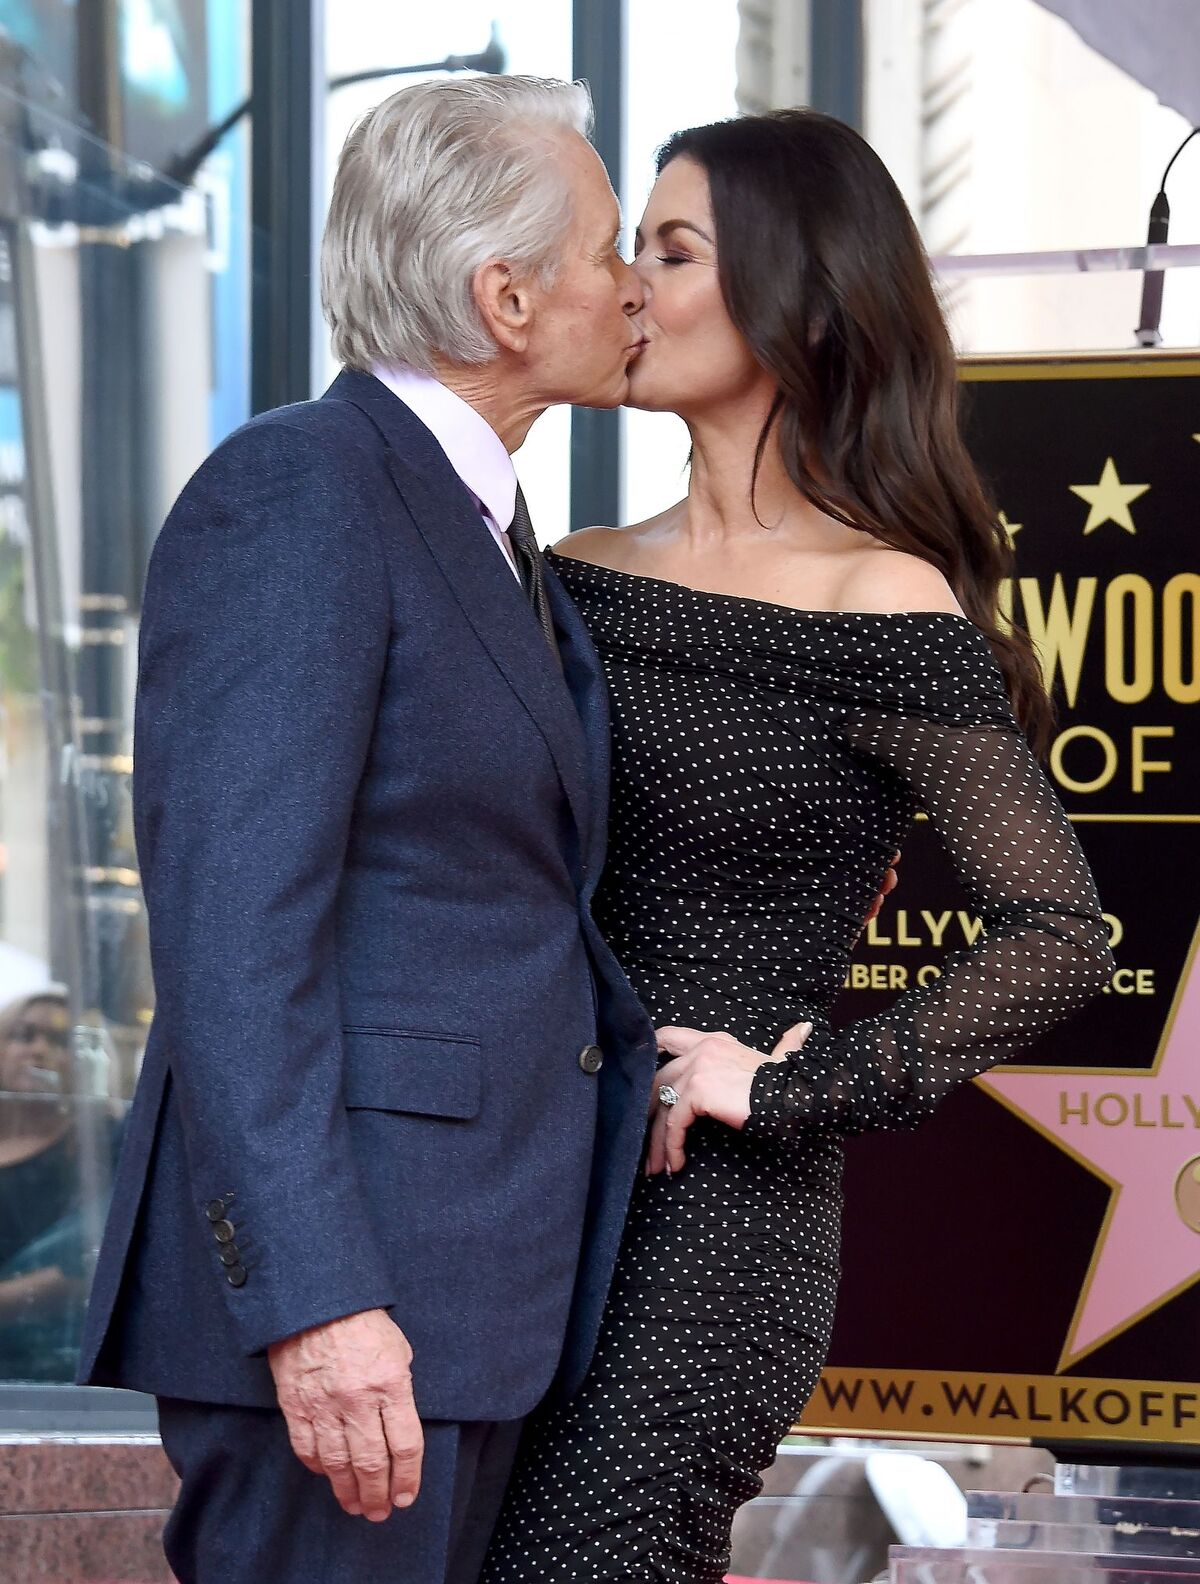 Michael Douglas and Catherine Zeta-Jones pose at the Michael Douglas Star On The Hollywood Walk Of Fame ceremony on November 6, 2018, in California | Photo: Gregg DeGuire/Getty Images